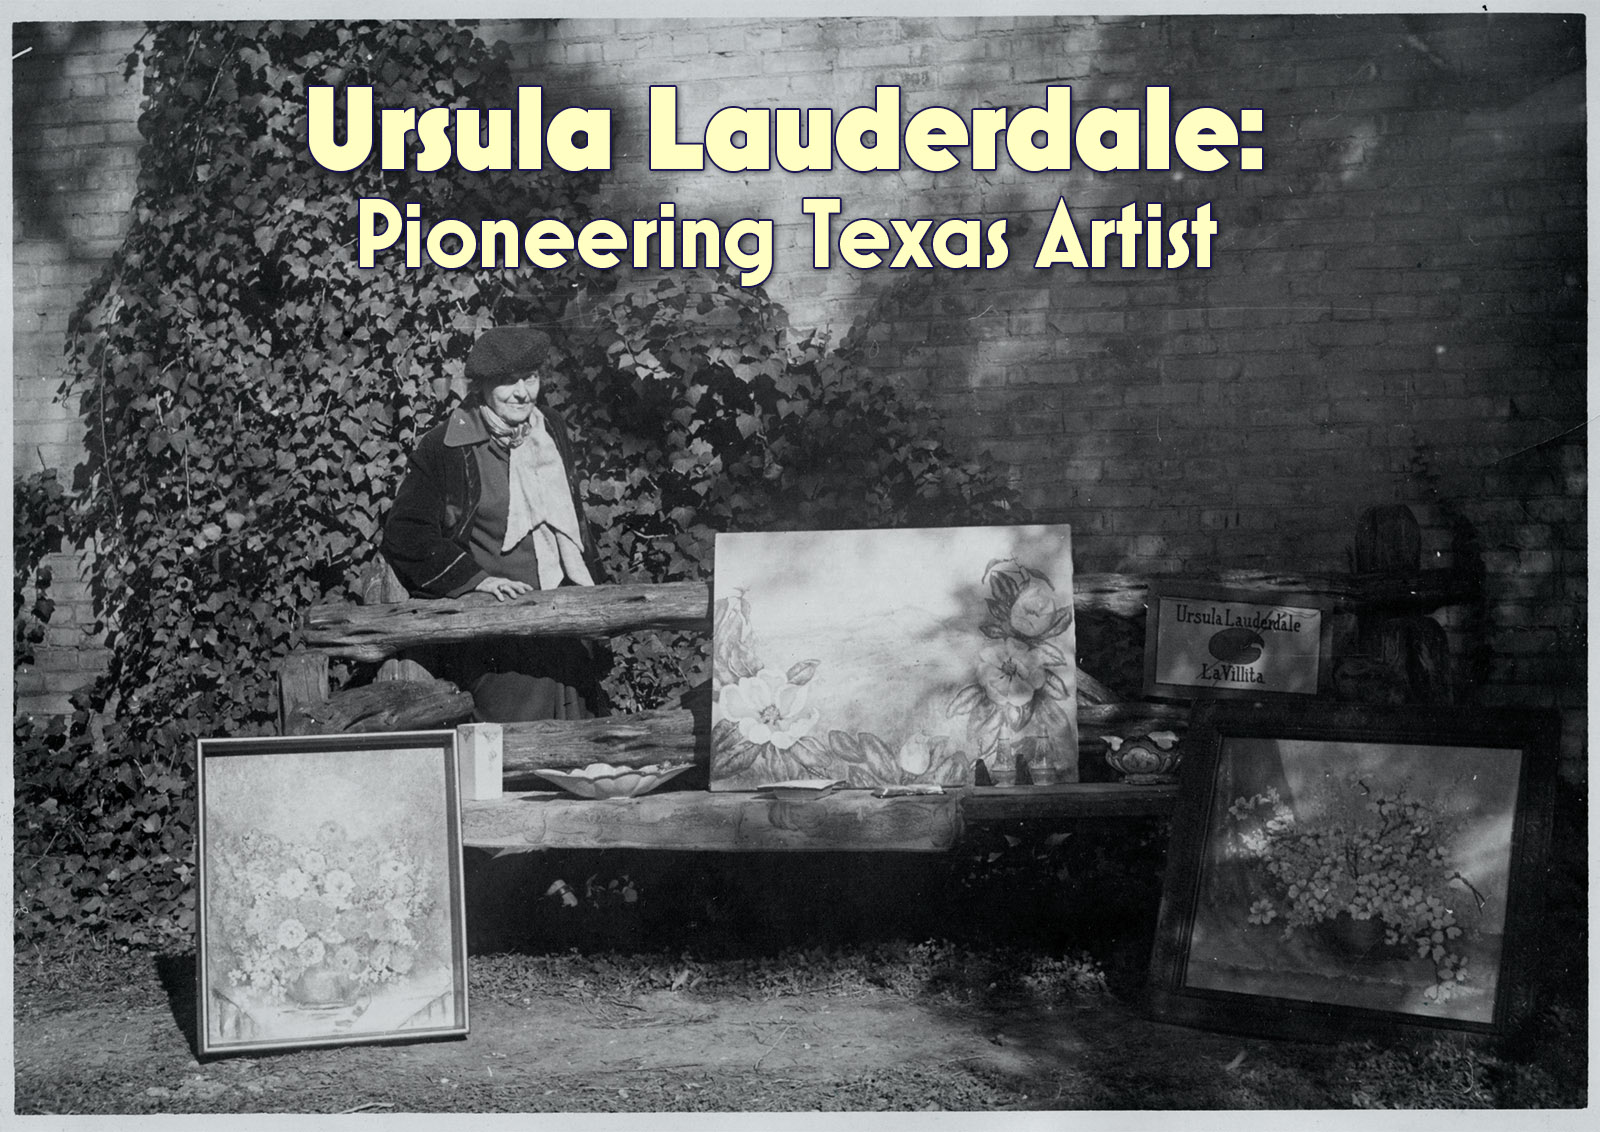 Image of Ursula Lauderdale posing outdoors with some of her paintings.